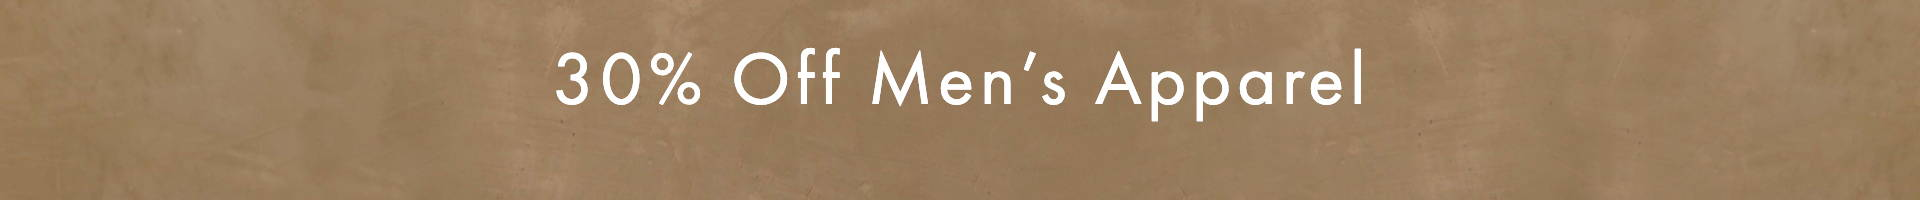 a banner advertising the 30% off mens apparel offer